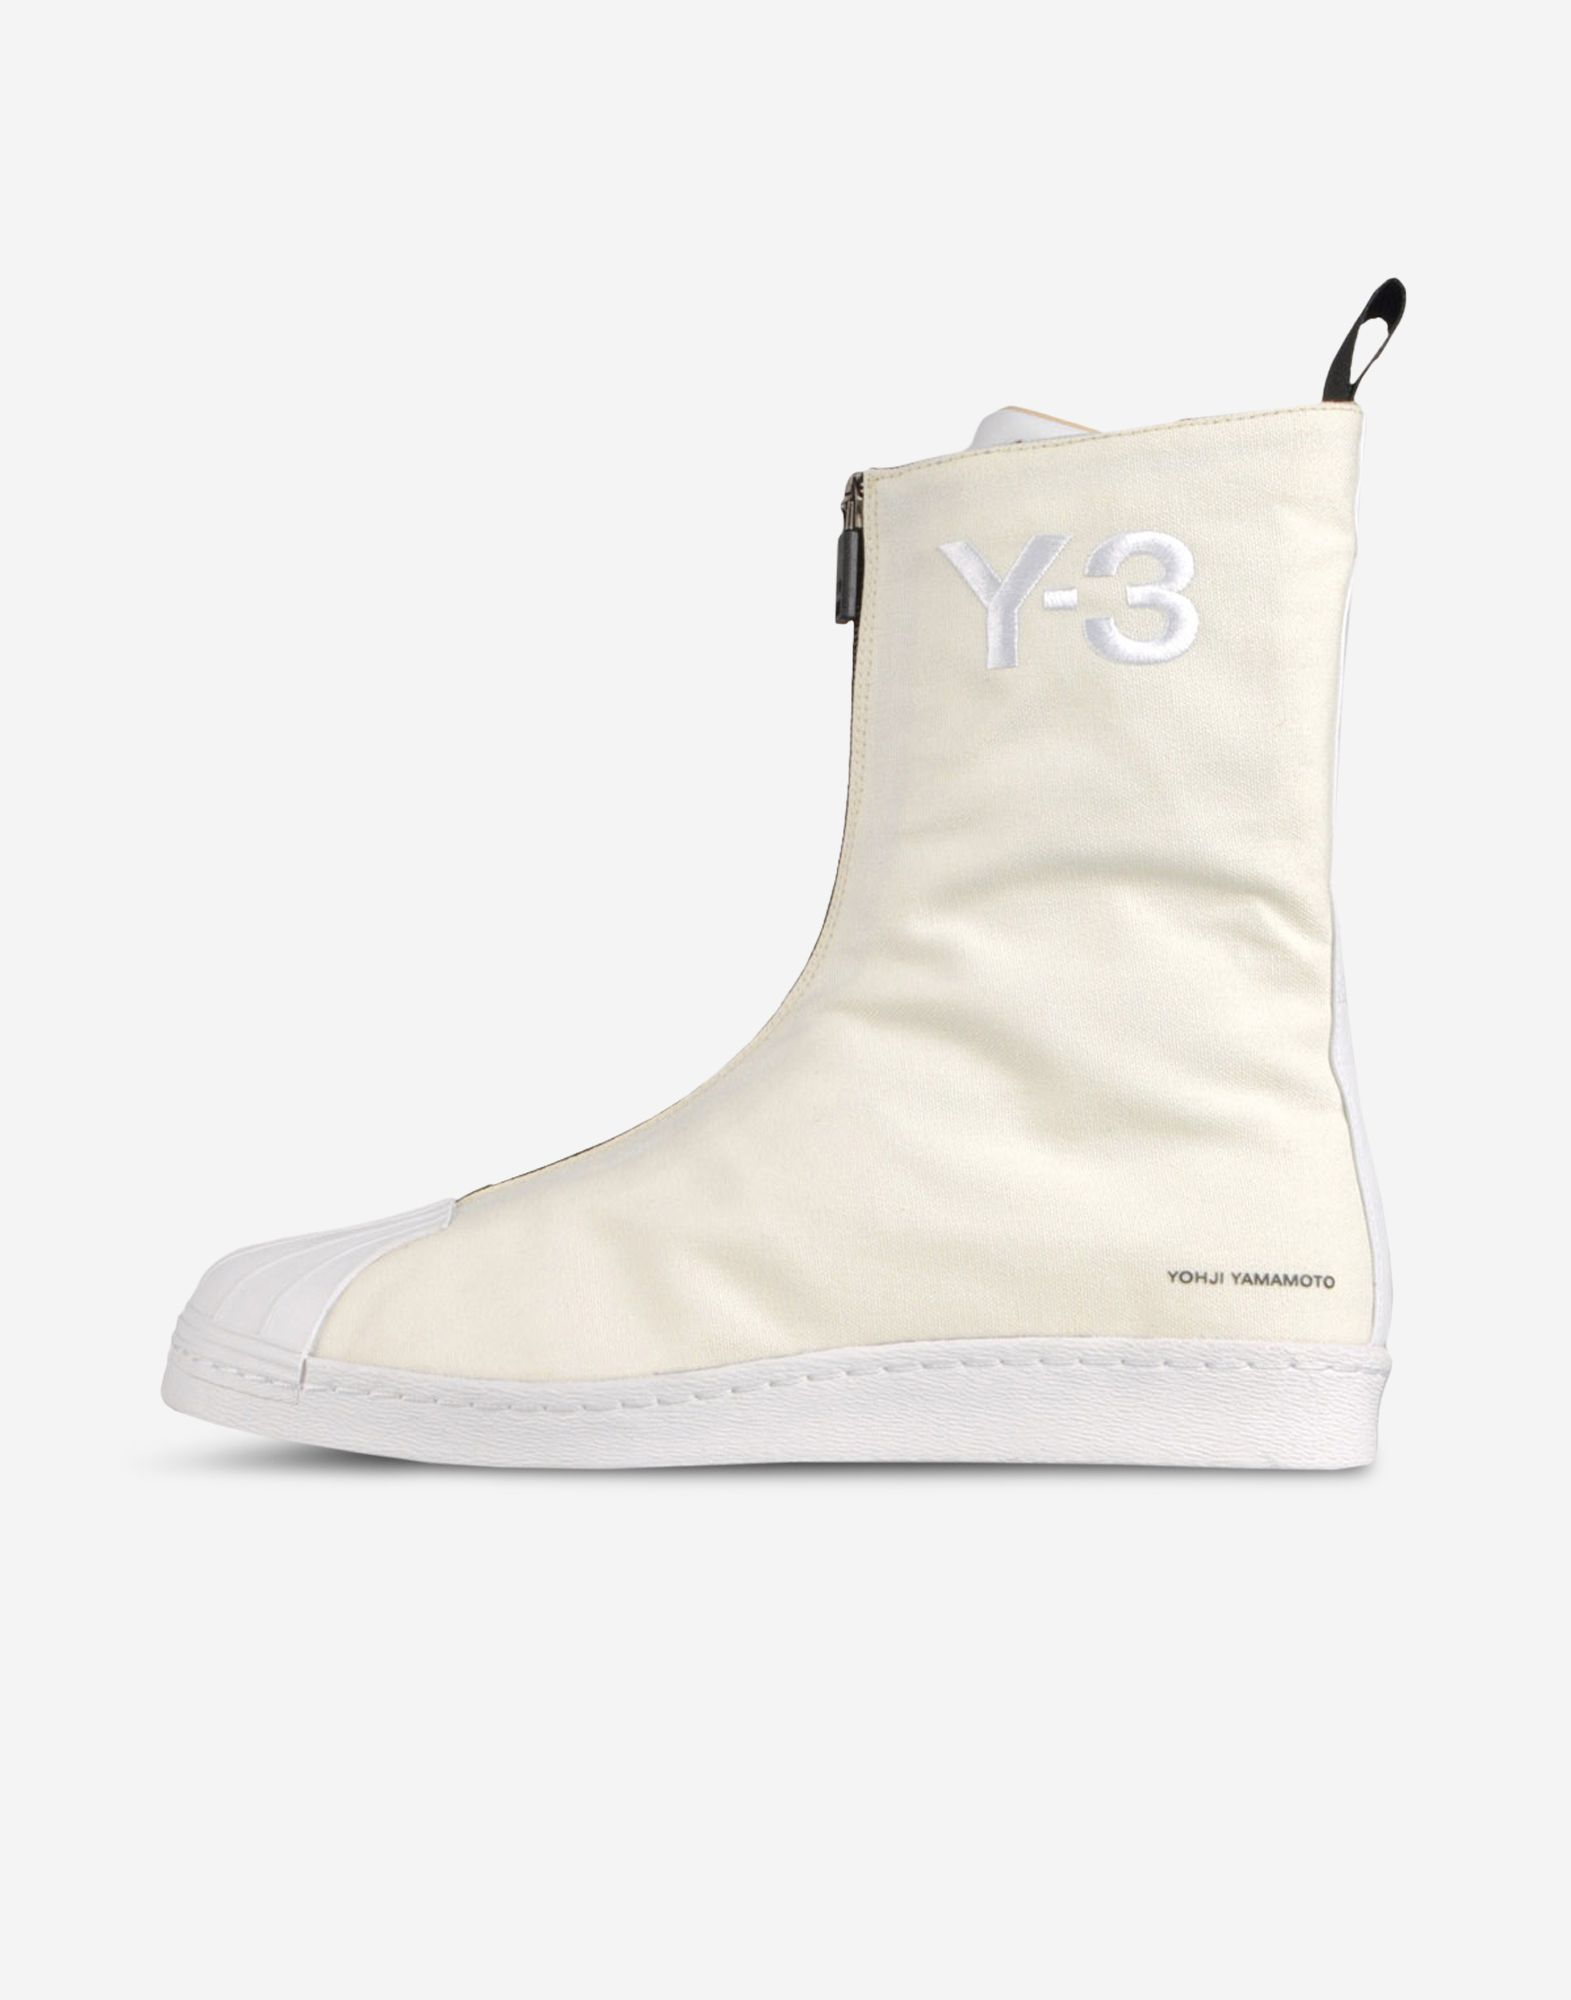 newest 3ef45 ee156 Y 3 X High Sneakers | Adidas Y-3 Official Site